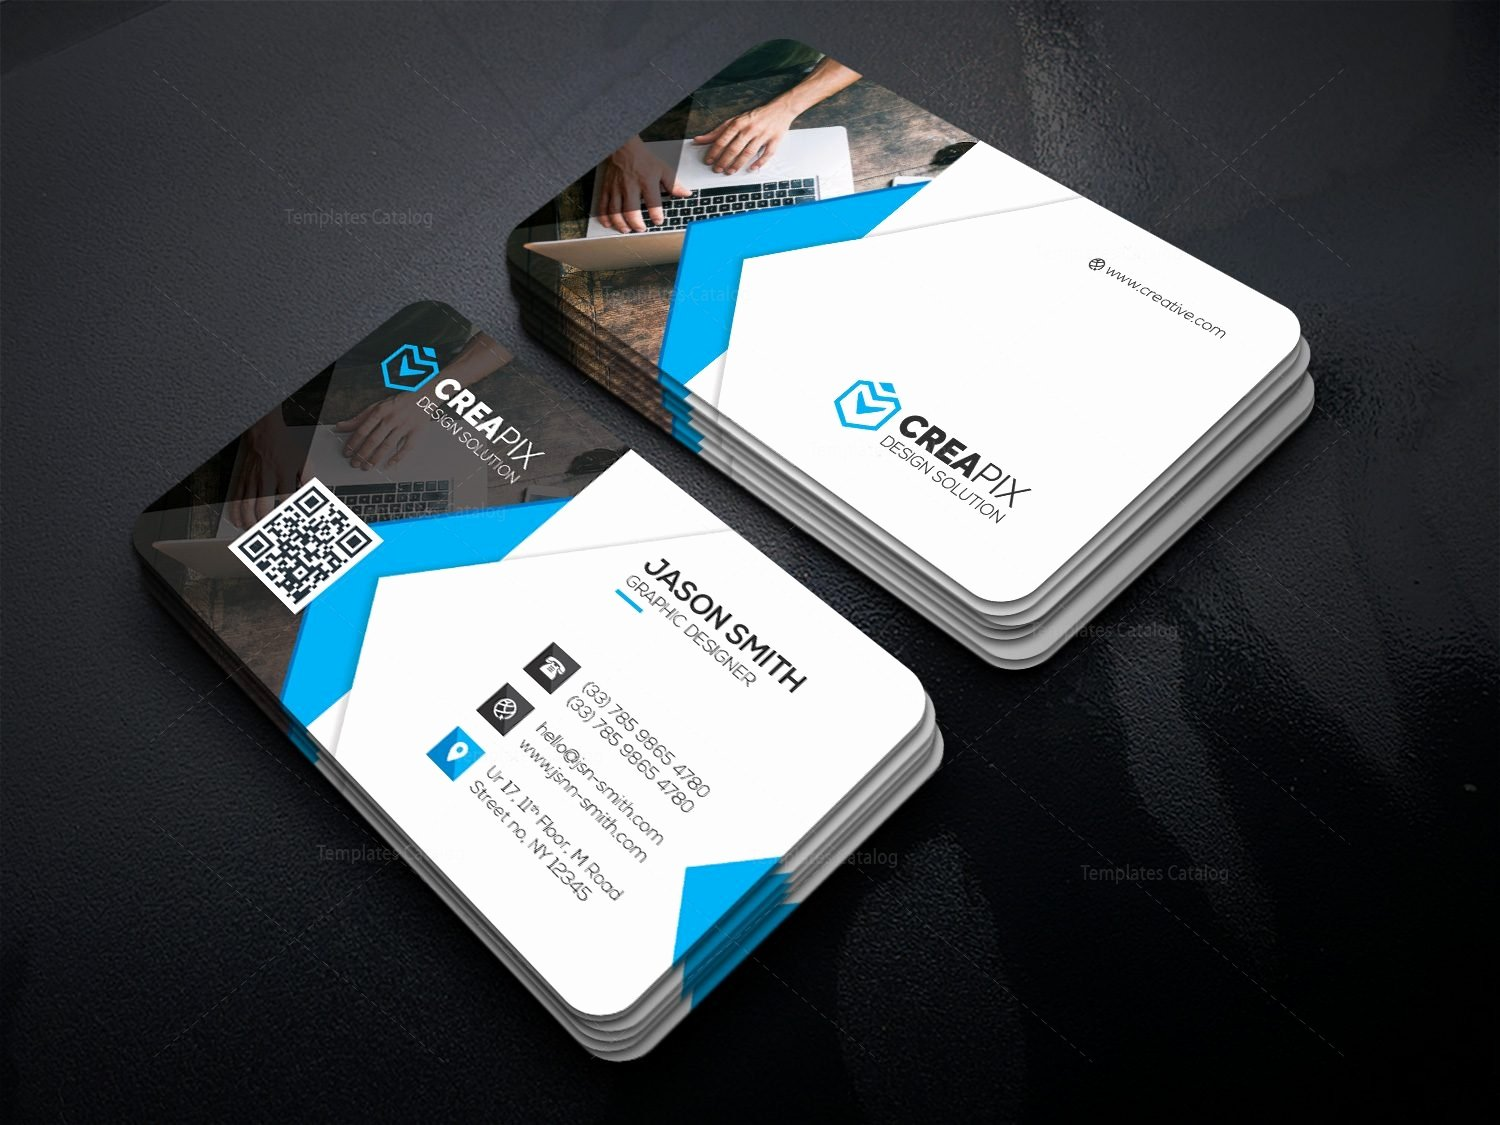 Personal Business Card Template Unique Personal Business Card Template Template Catalog